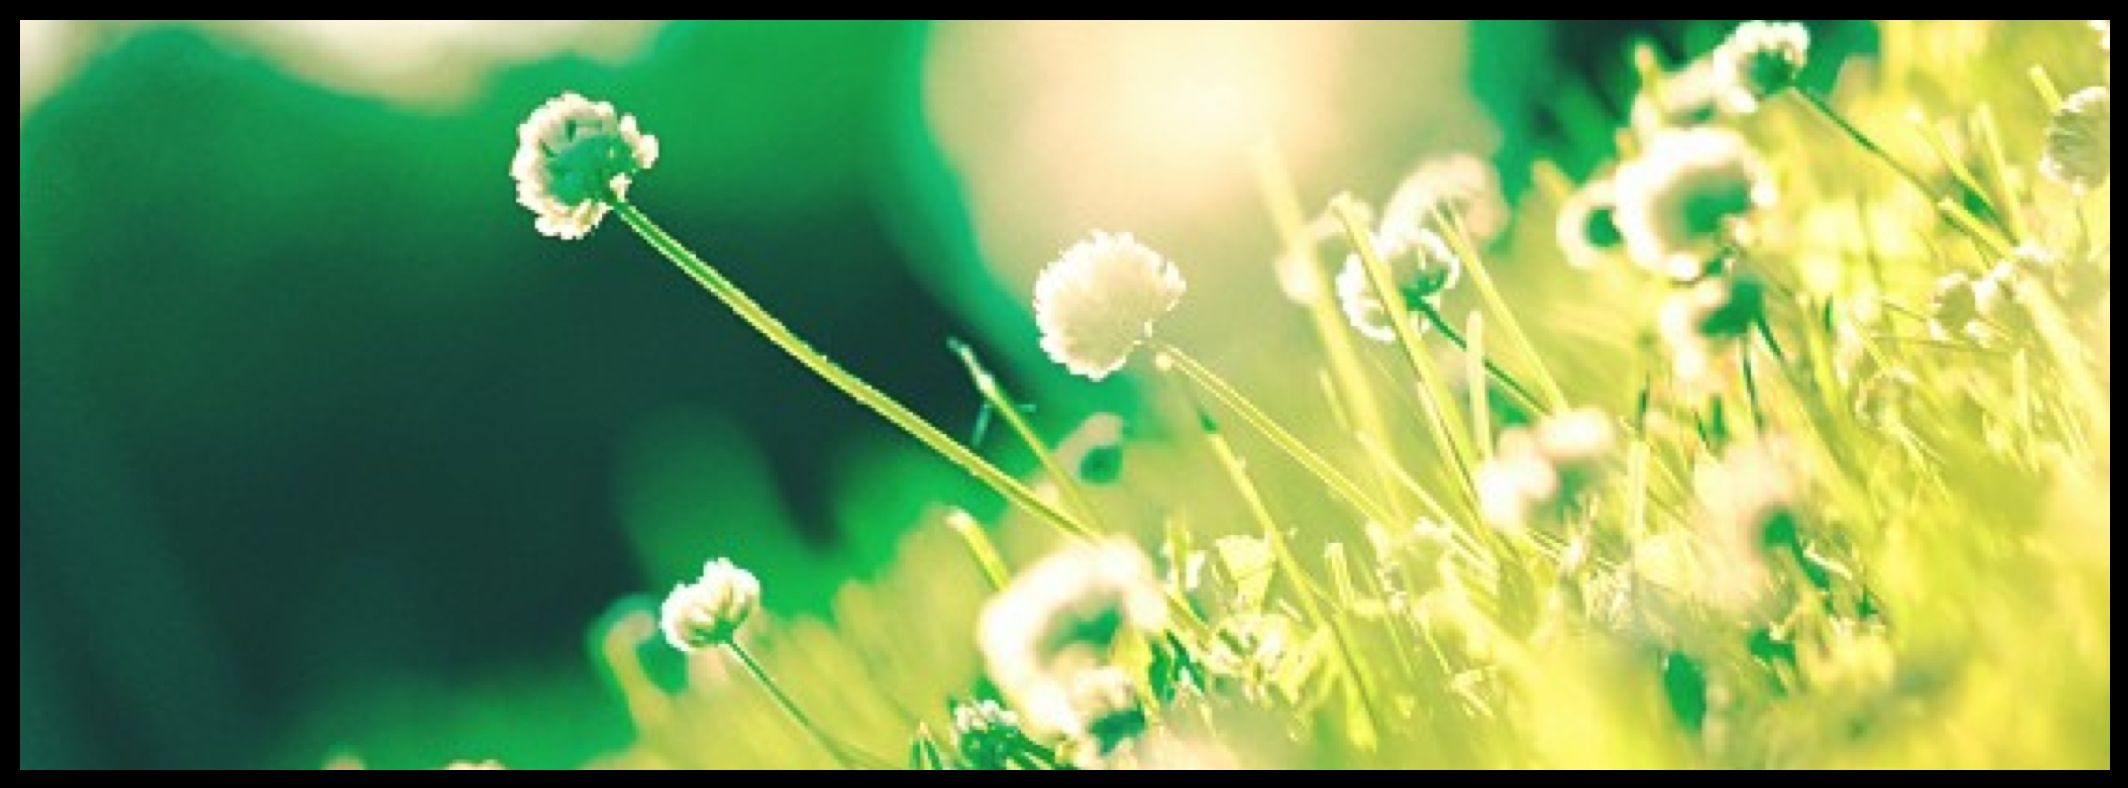 Dandelions And Grass Nature And Beauty Facebook Cover Photo Fb Covers Facebook Cover Photos Cover Photos Facebook Cover Quotes